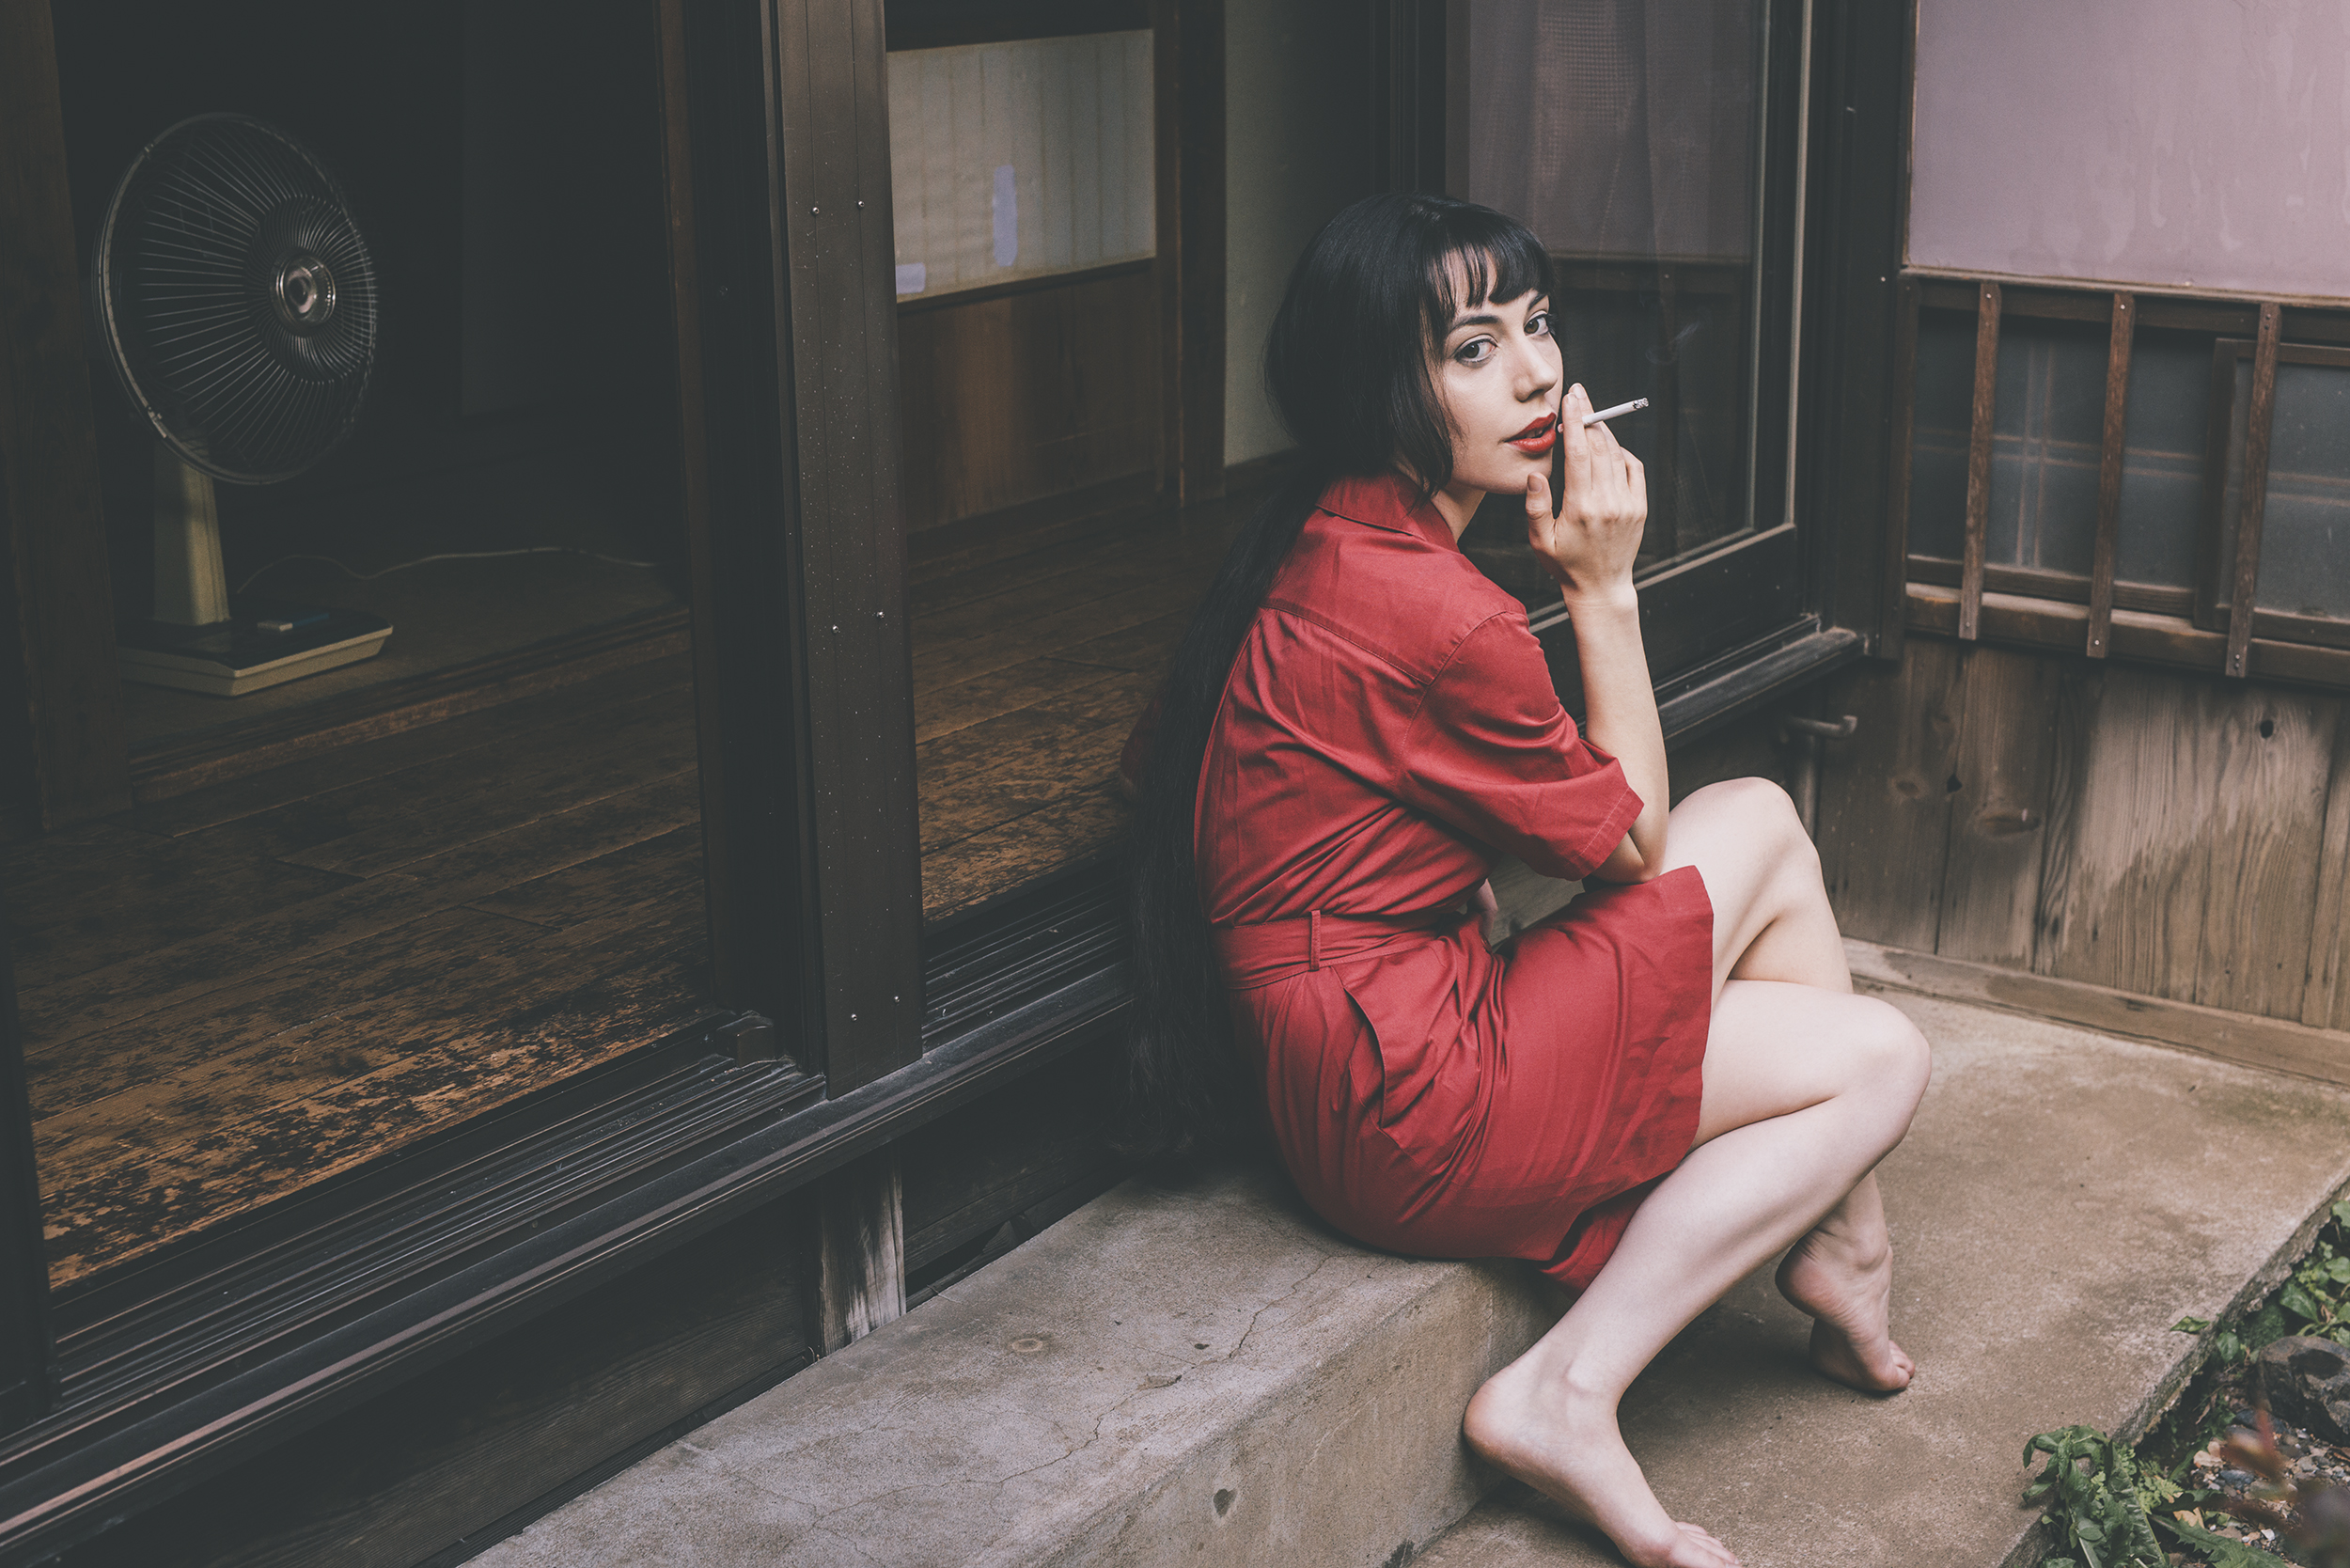 Gestalta photographed by Shuji Kobayashi. Girl in a red dress and red lipstick smoking a cigarette